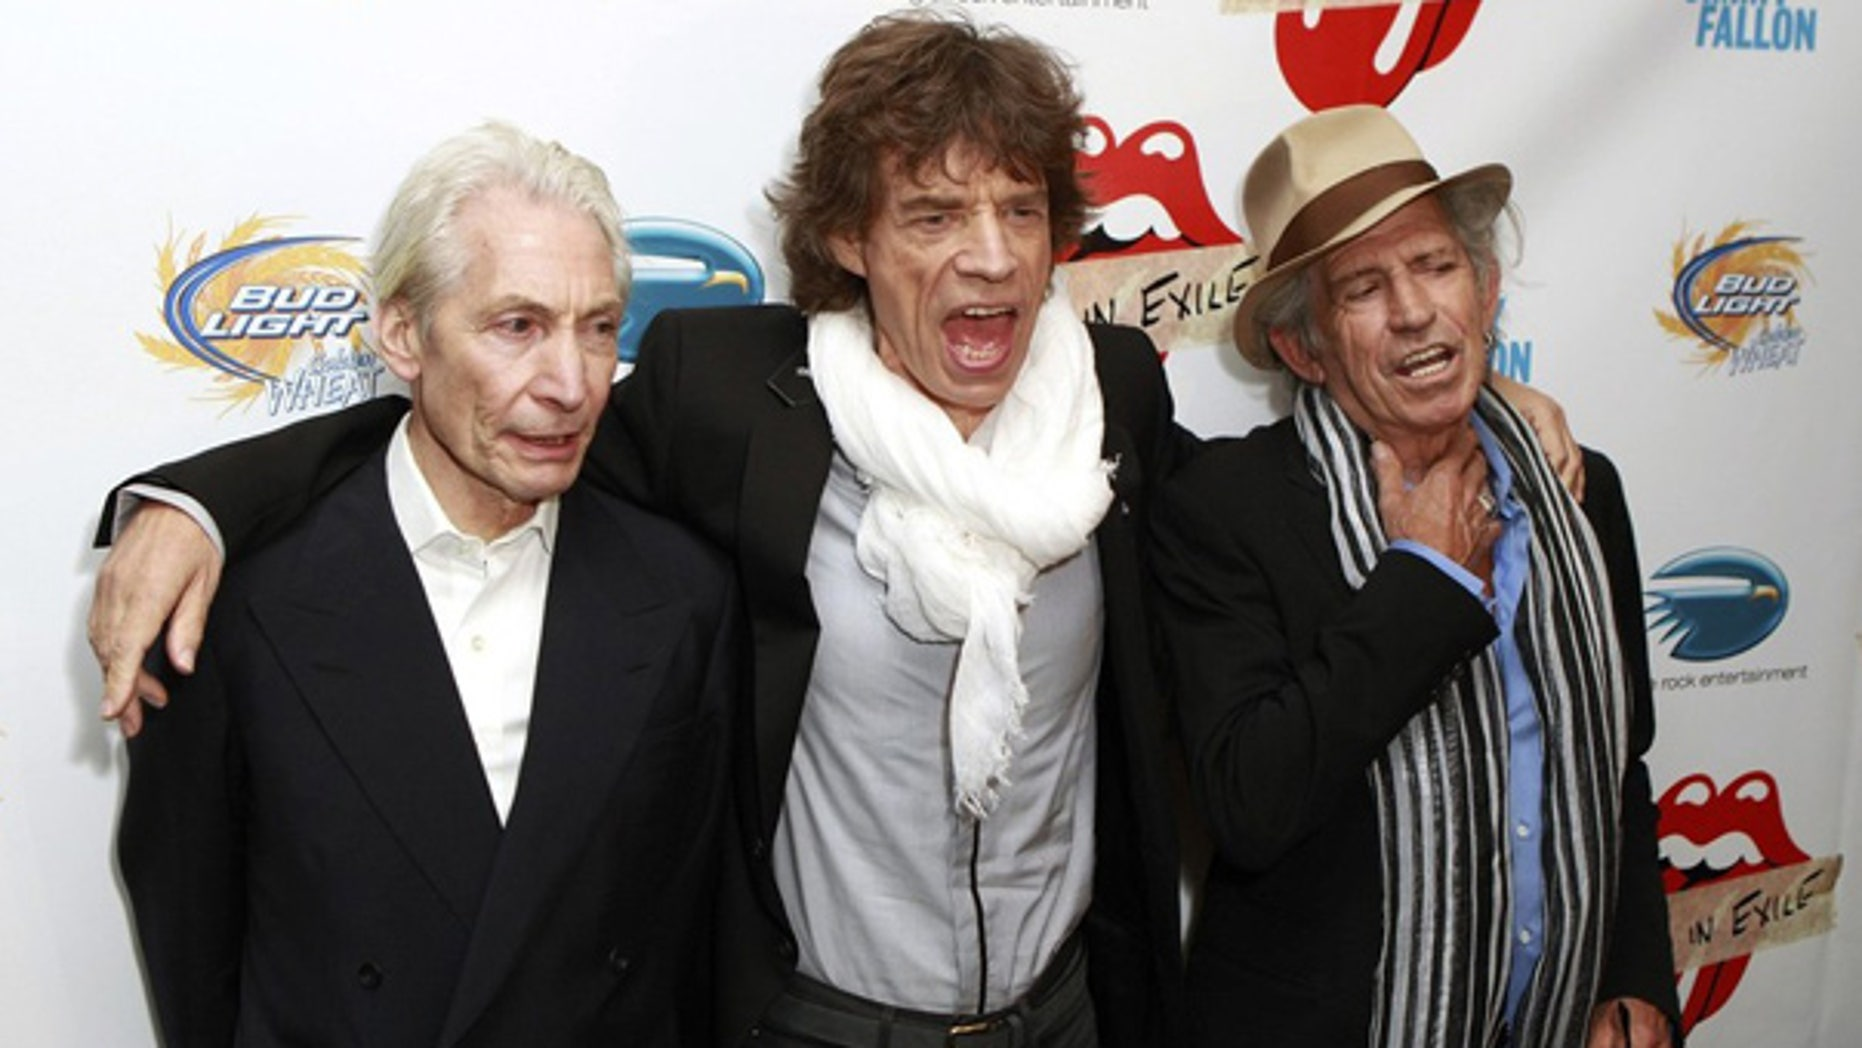 Rolling Stones band members Charles Watts, Mick Jagger, and Keith Richards.